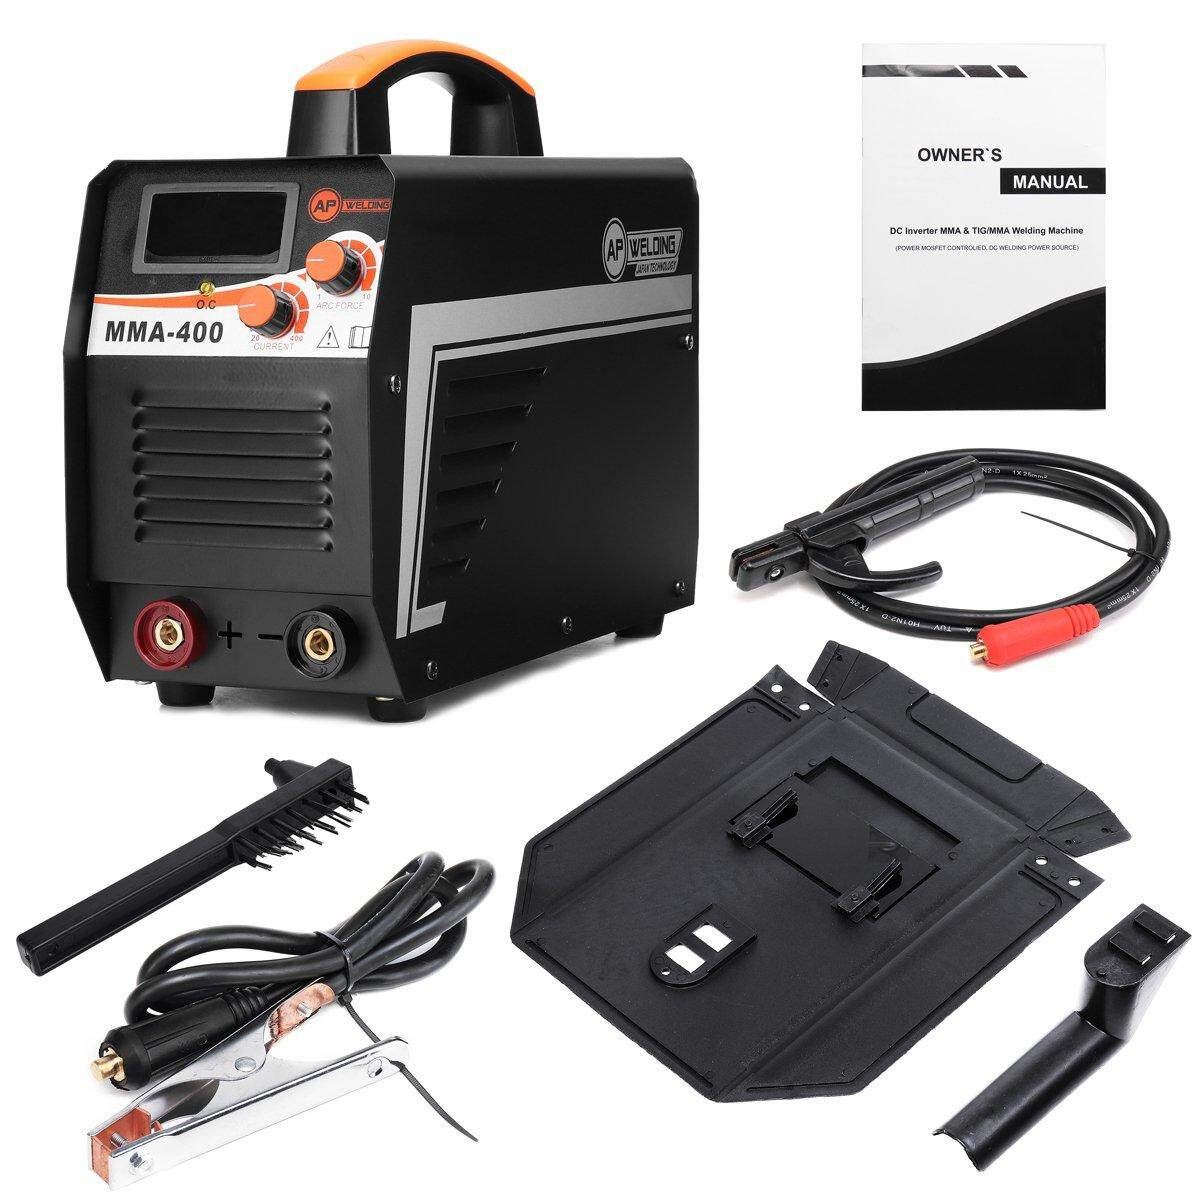 【Free Shipping + Super Deal + Support Cash on Delivery】220V DC MMA-400 Electric Welding Machine IGBT Arc Inverter Stick Welder + Clamp